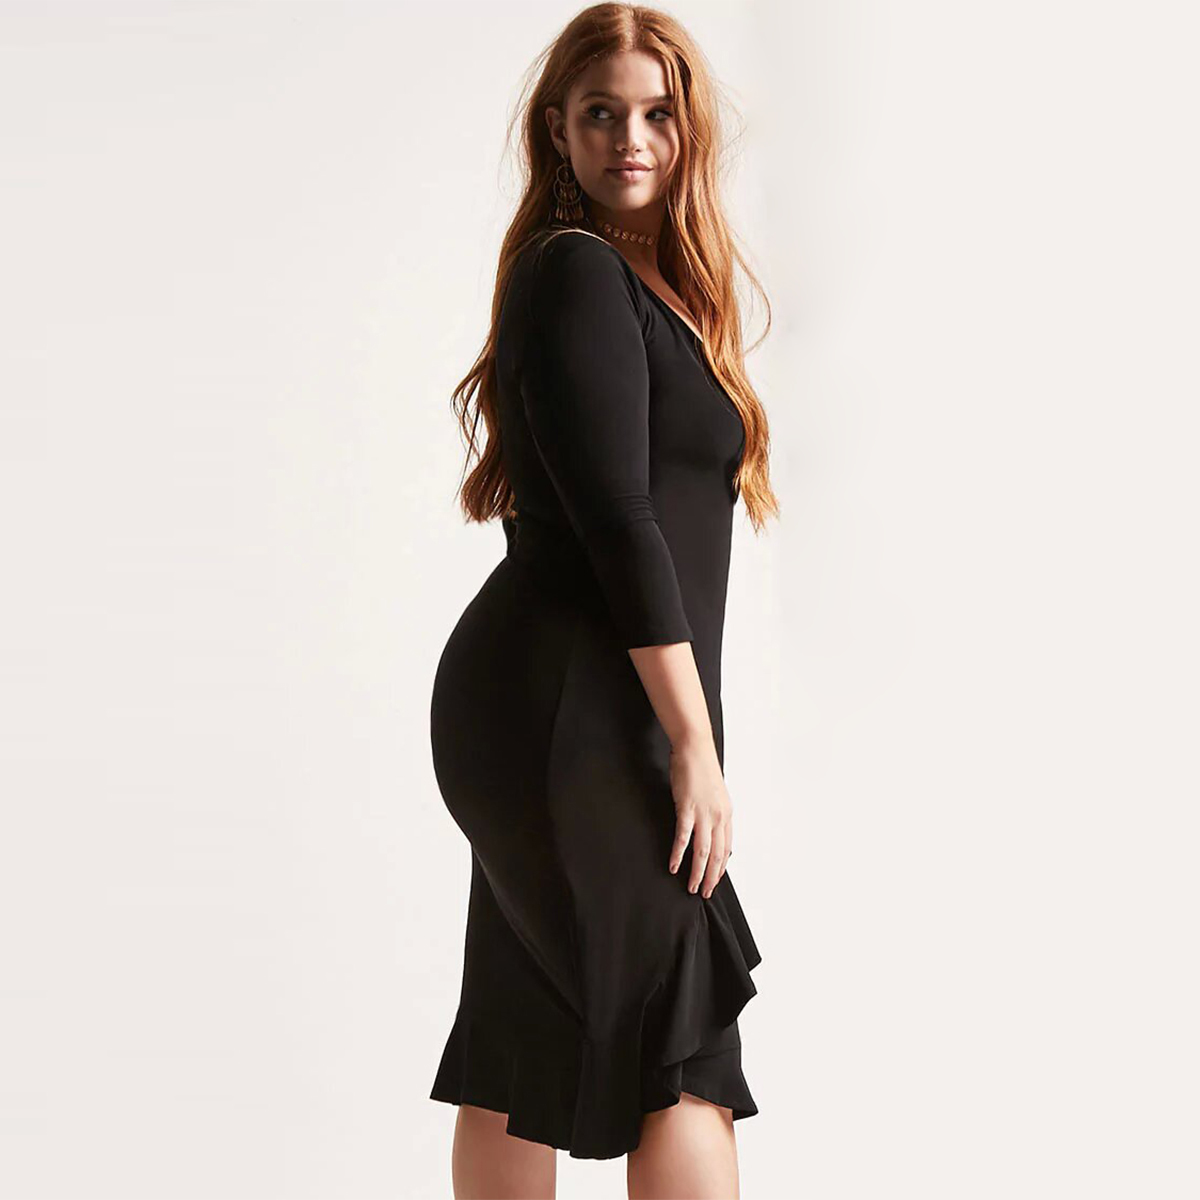 kissmilk 2018 Plus Size Sexy Lace Up Women Dresses V neck Ruffles Solid  Black Female Clothing Big Size Lady Slim Dress 3XL 7XL-in Dresses from  Women s ... 484898d8b380